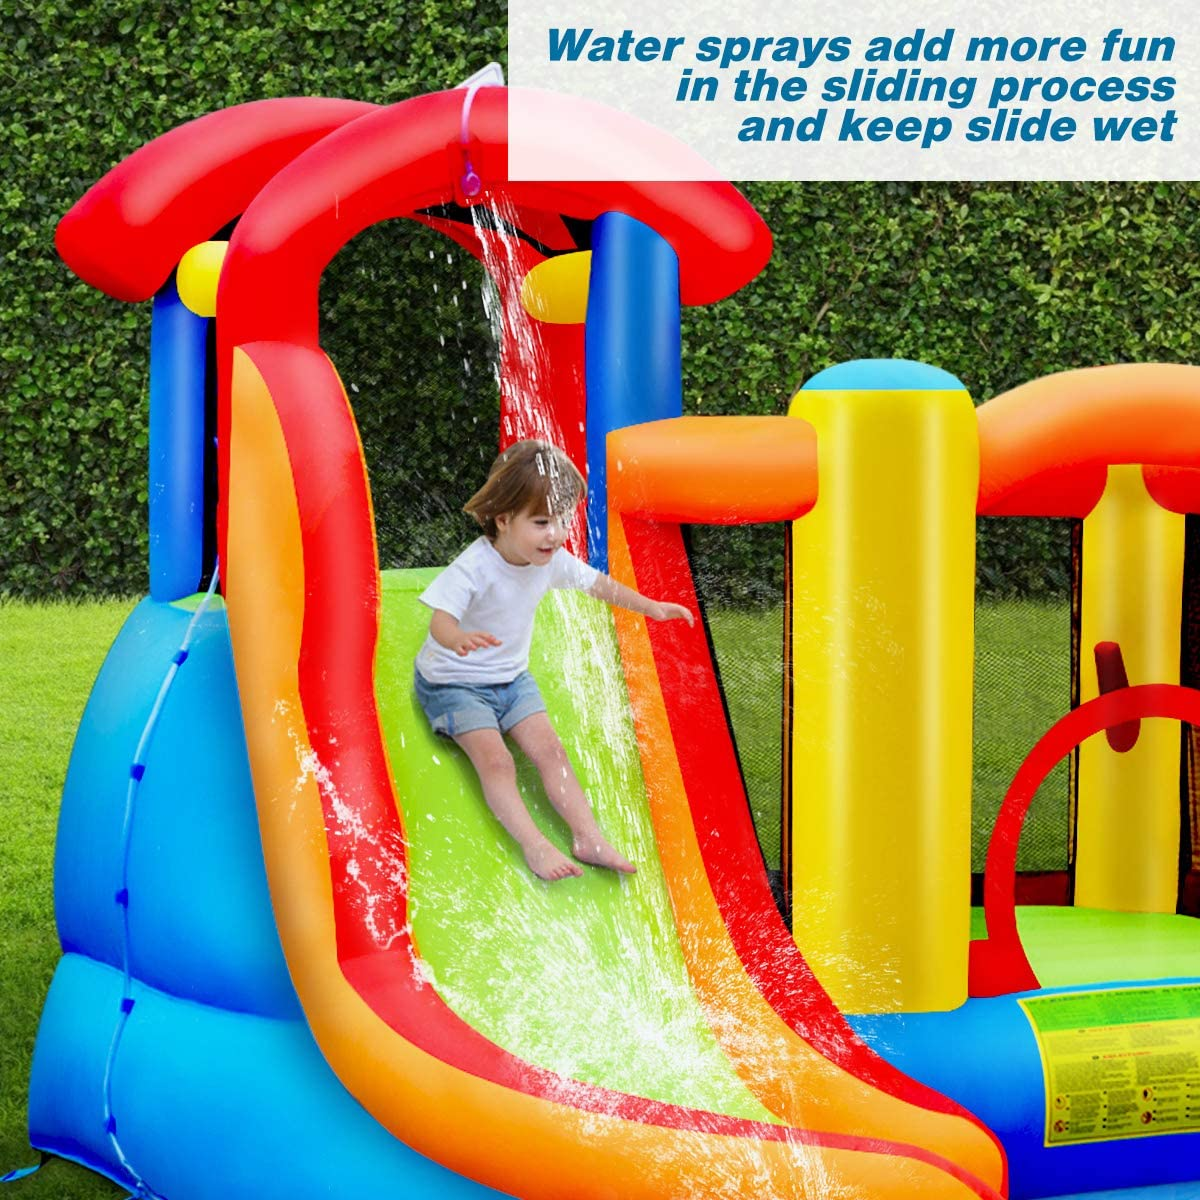 6 in 1 Water Slide Jumping Park w//Splashing Pool BOUNTECH Inflatable Bounce House Repair Kit Water Cannon with 740W Air Blower Stakes Including Carry Bag Climbing Wall Basketball Scoop Hose